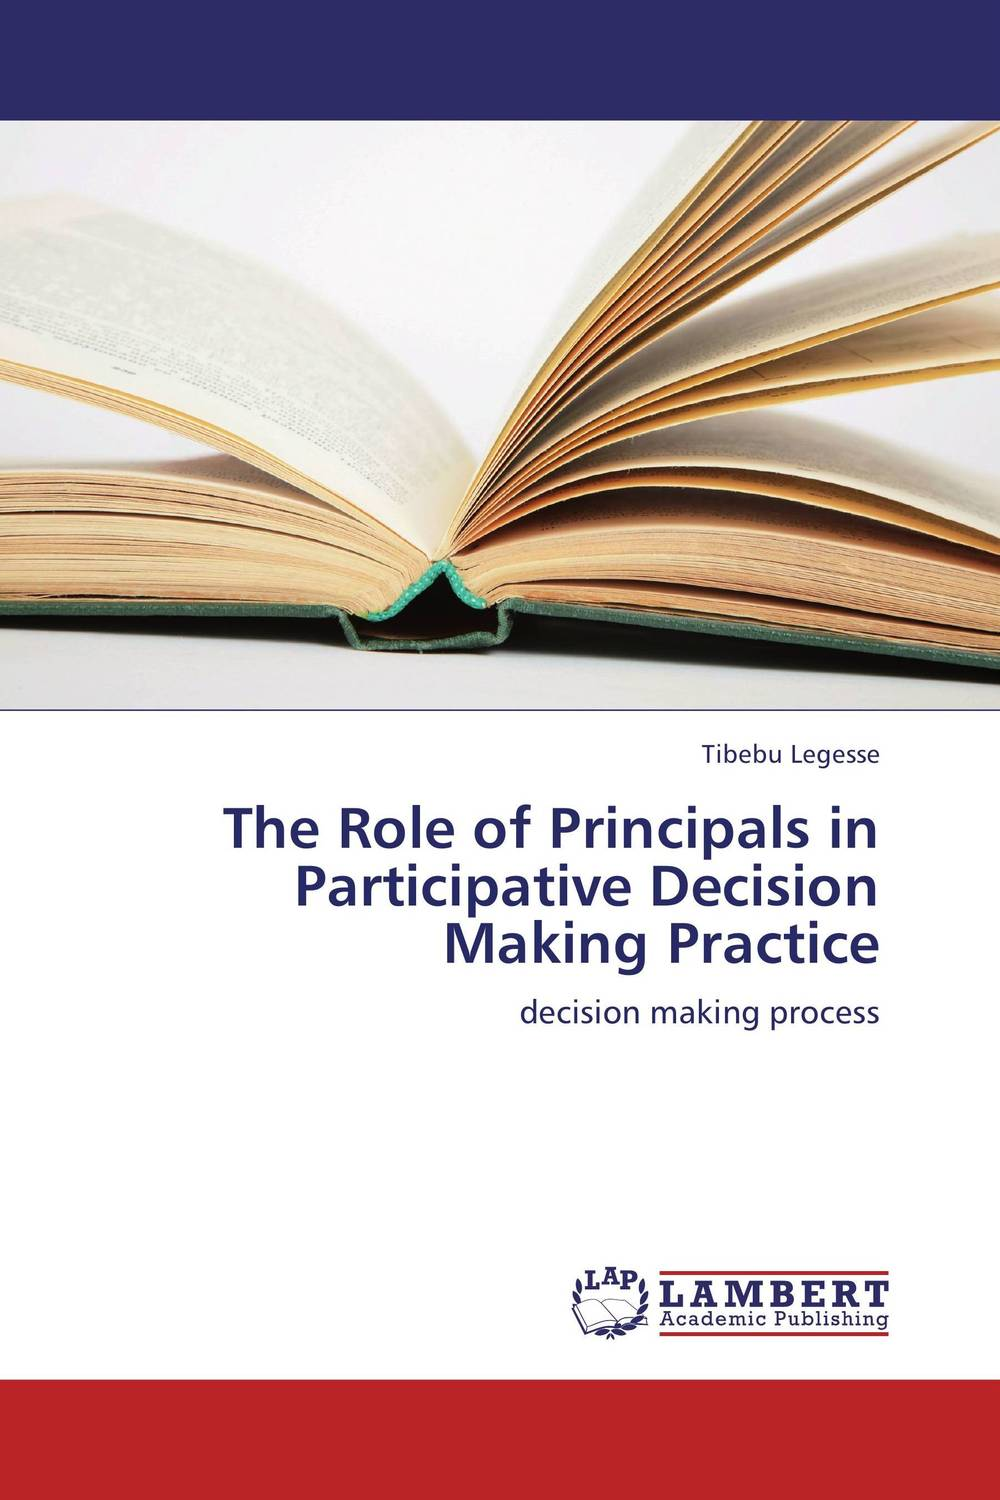 The Role of Principals in Participative Decision Making Practice role of school leadership in promoting moral integrity among students